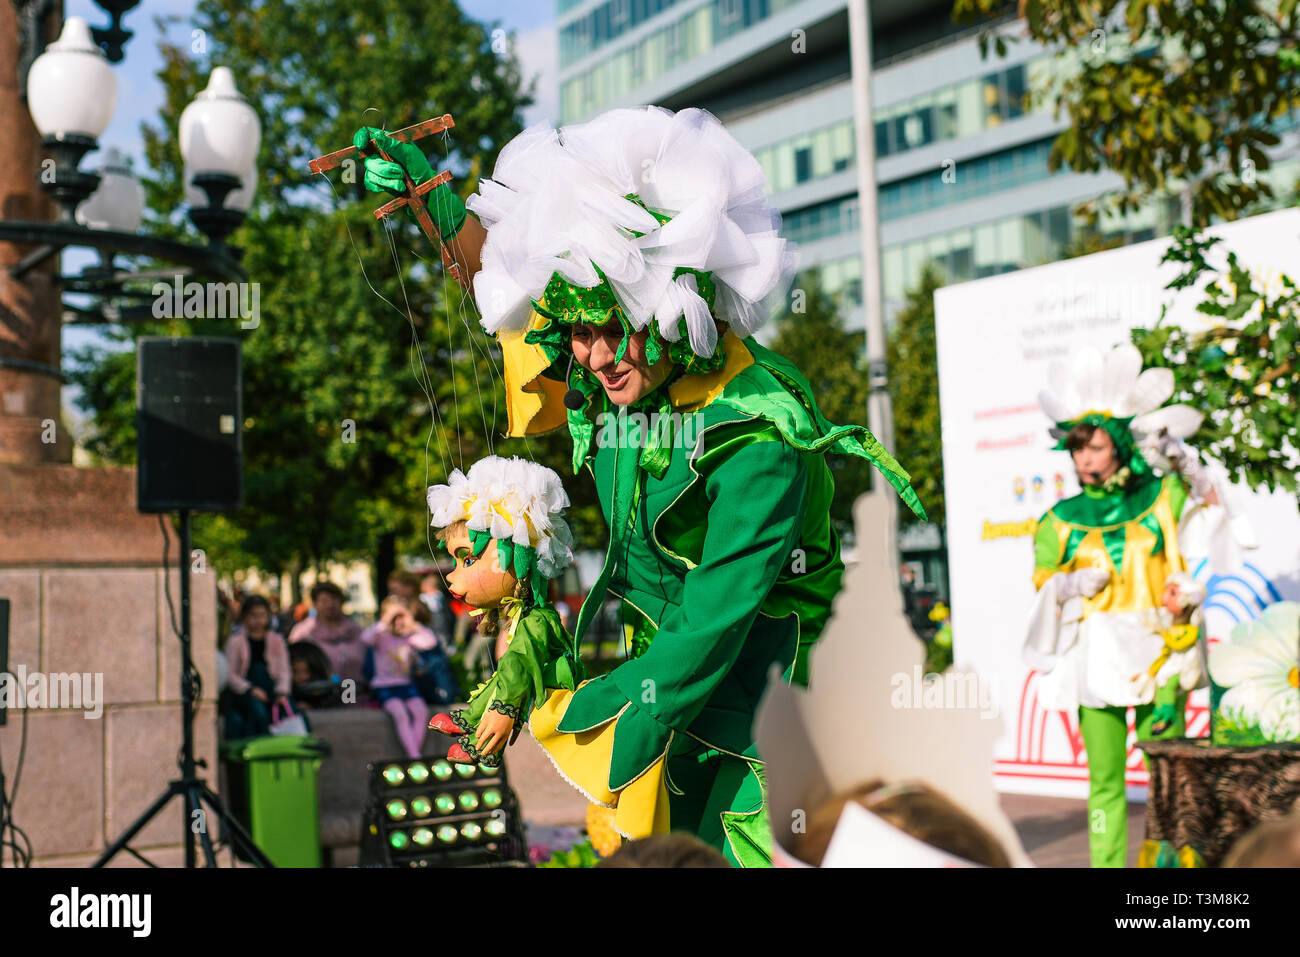 Russia, city Moscow - September 6, 2014: The puppet theater actor controls the doll. A doll driven by a puppeteer actor with the help of threads - Stock Image